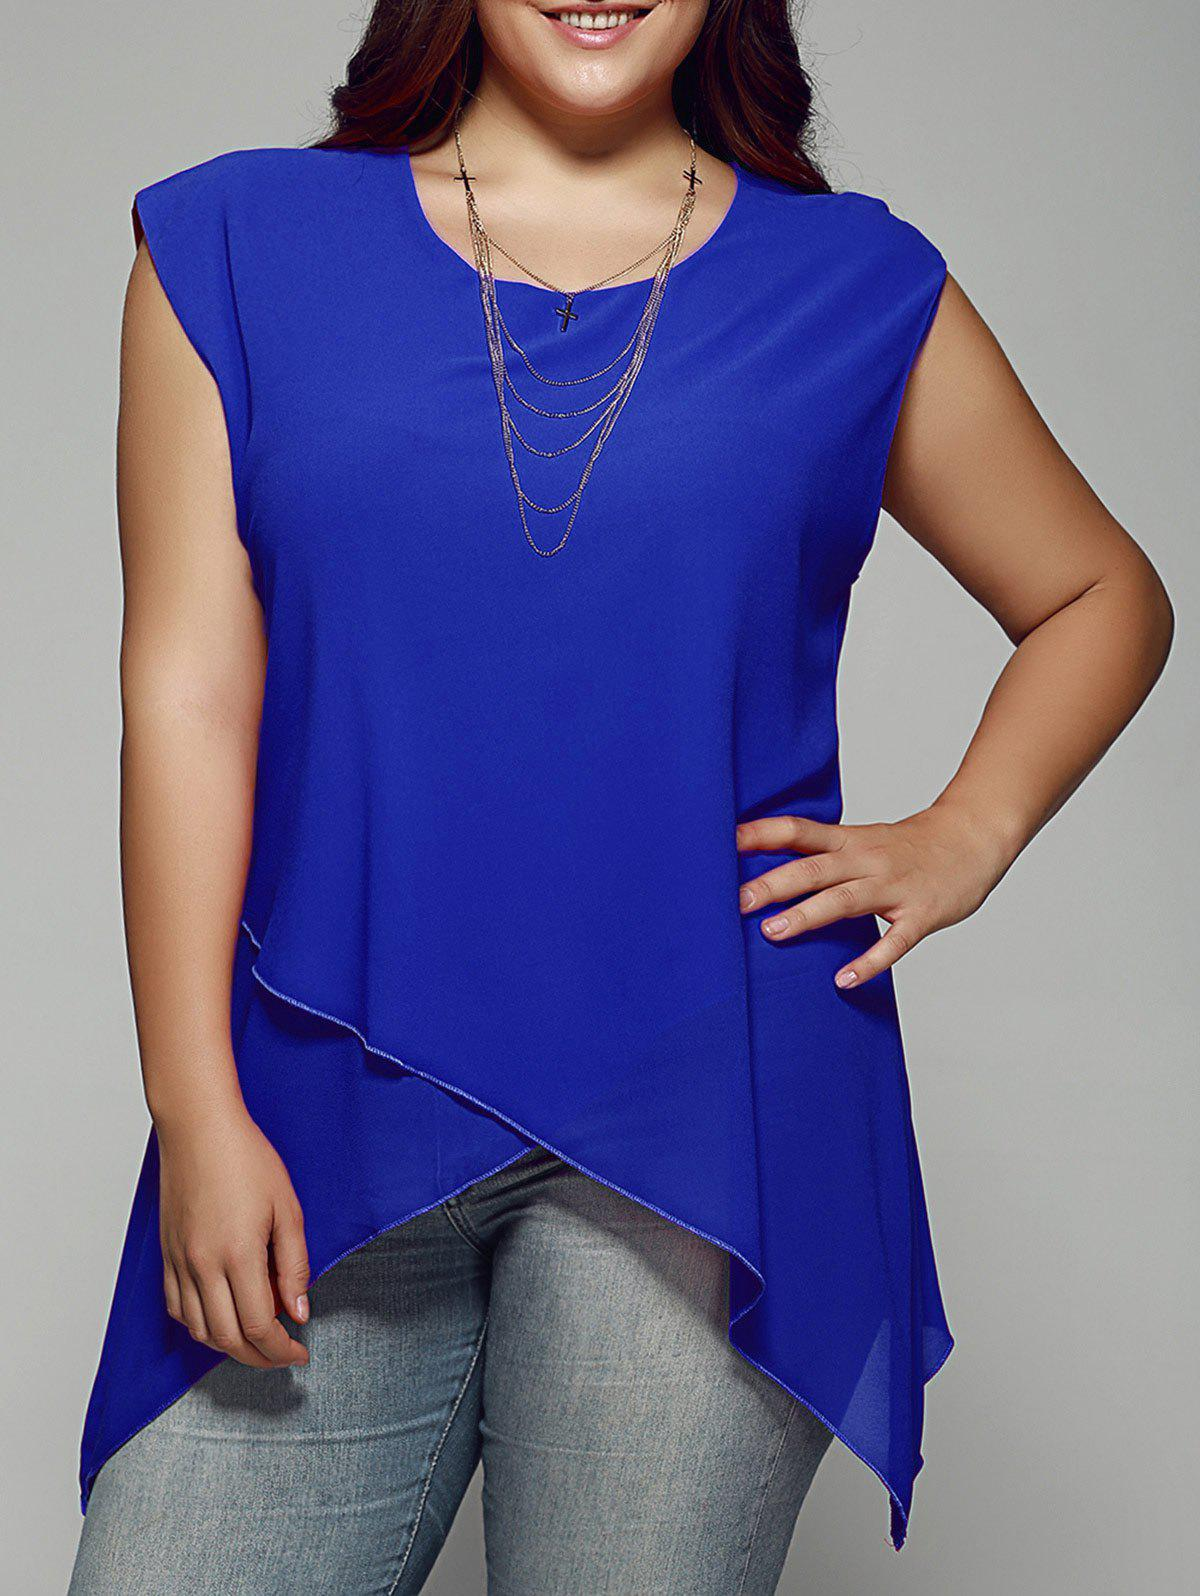 Plus Size Asymmetrical Chiffon BlouseWOMEN<br><br>Size: 3XL; Color: SAPPHIRE BLUE; Material: Polyester; Shirt Length: Regular; Sleeve Length: Sleeveless; Collar: Scoop Neck; Style: Fashion; Season: Summer; Pattern Type: Solid; Weight: 0.1760kg; Package Contents: 1 x Blouse;